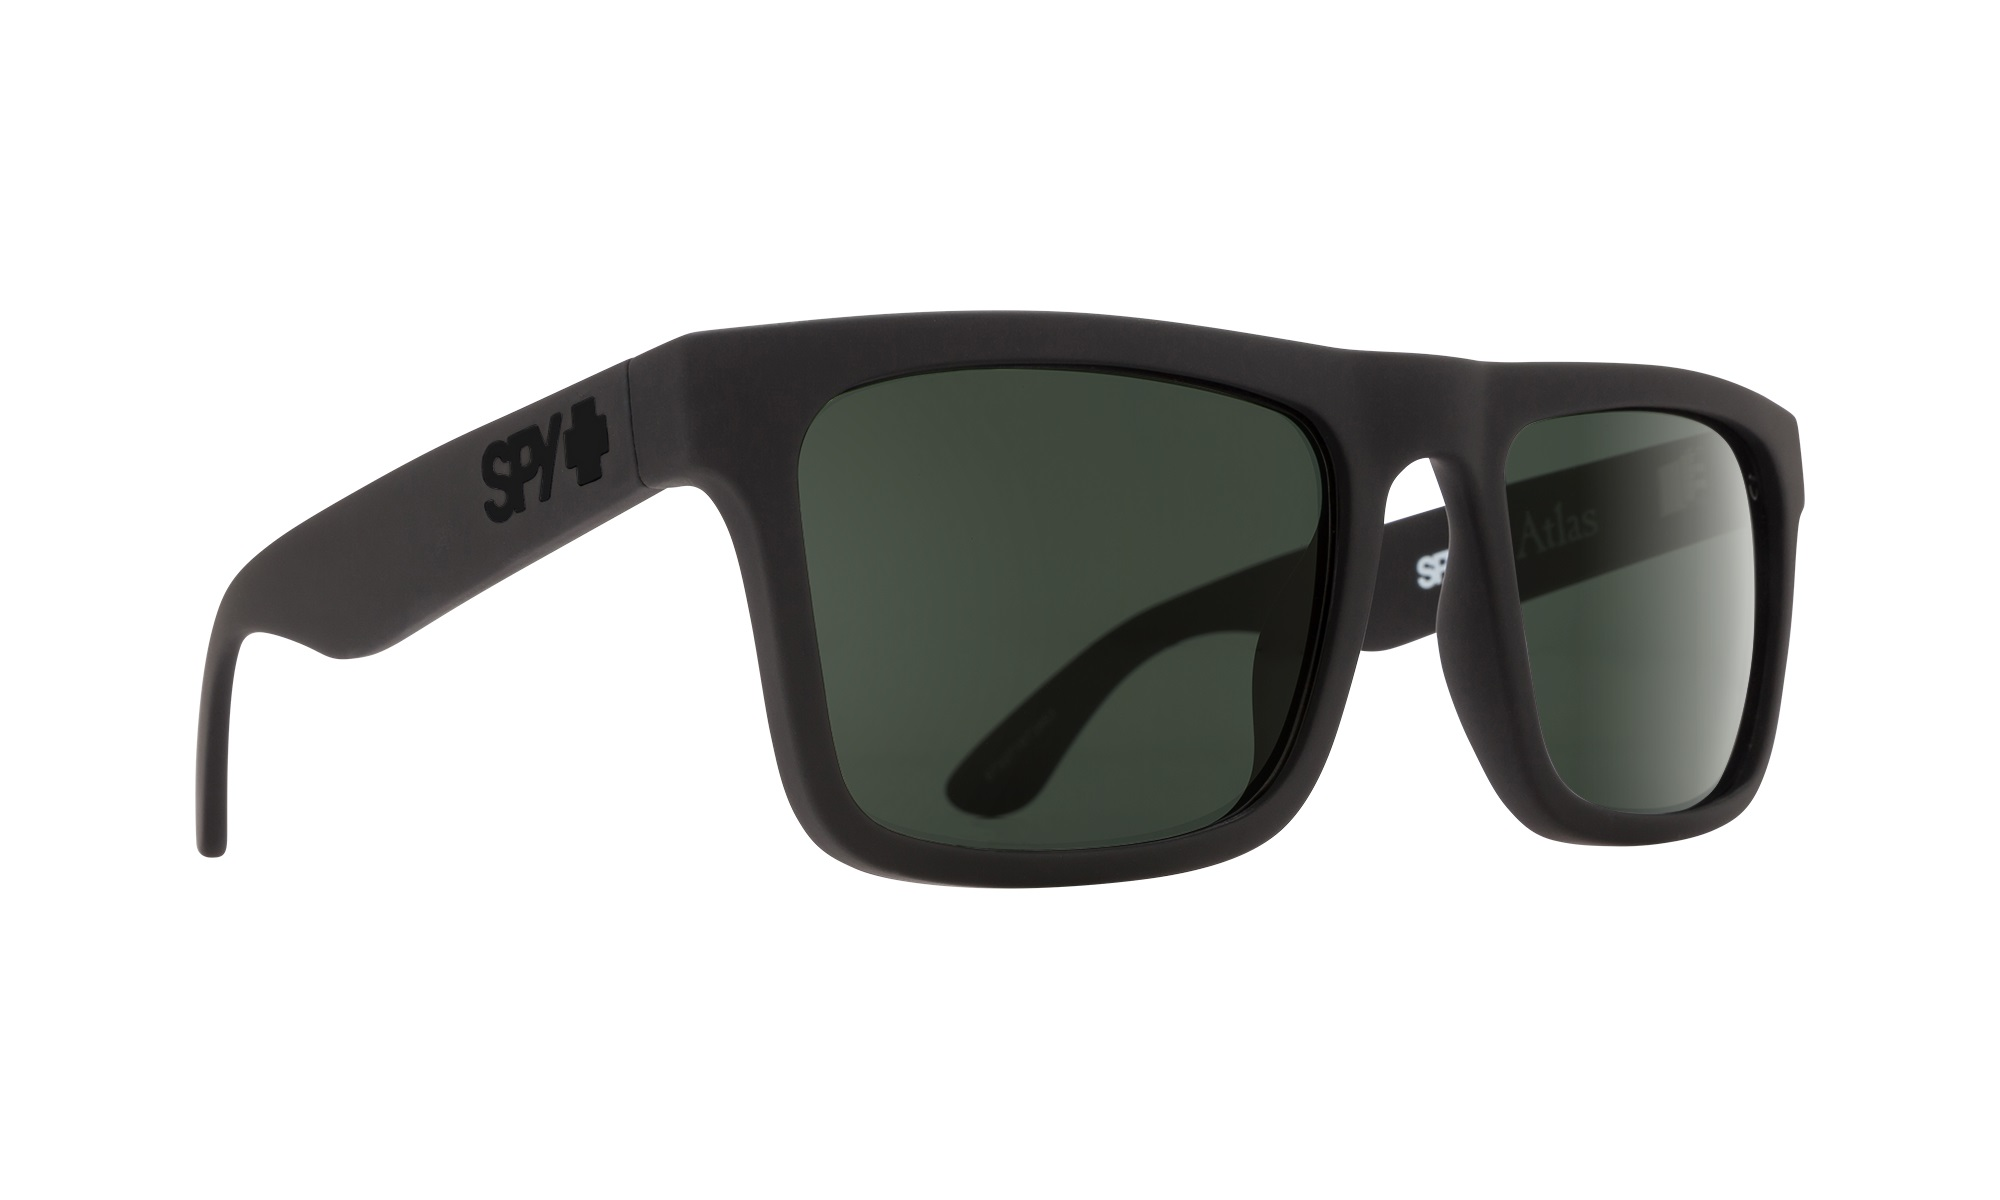 3f0f9cca67 Spy Optic Flynn Sunglasses FREE S H 7700000000003. Spy Optic Sunglasses.